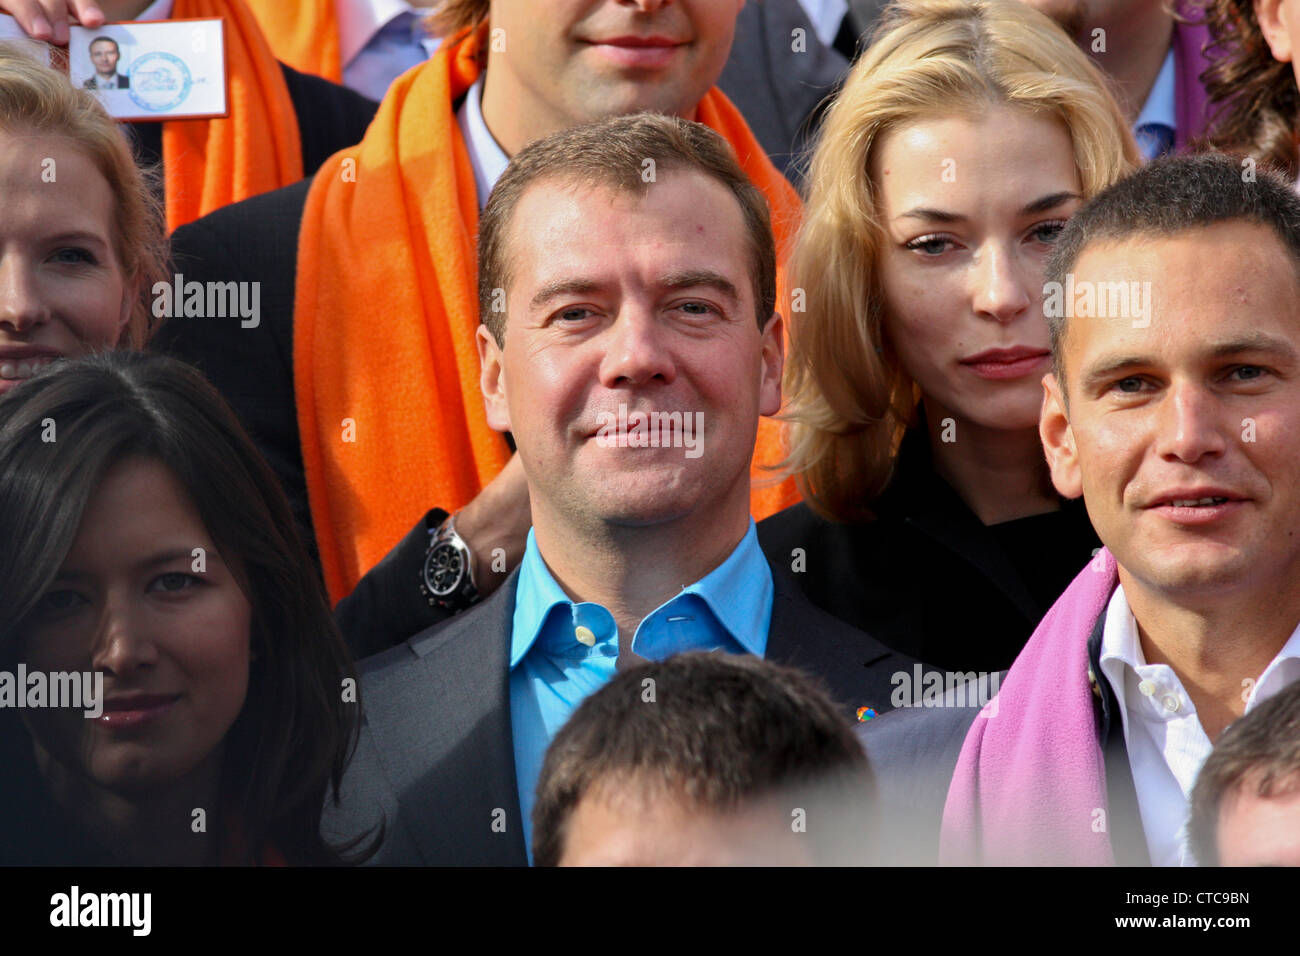 Russian president Dmitry Medvedev with students during a ceremony at Skolkovo MBA school near Moscow, Russia - Stock Image